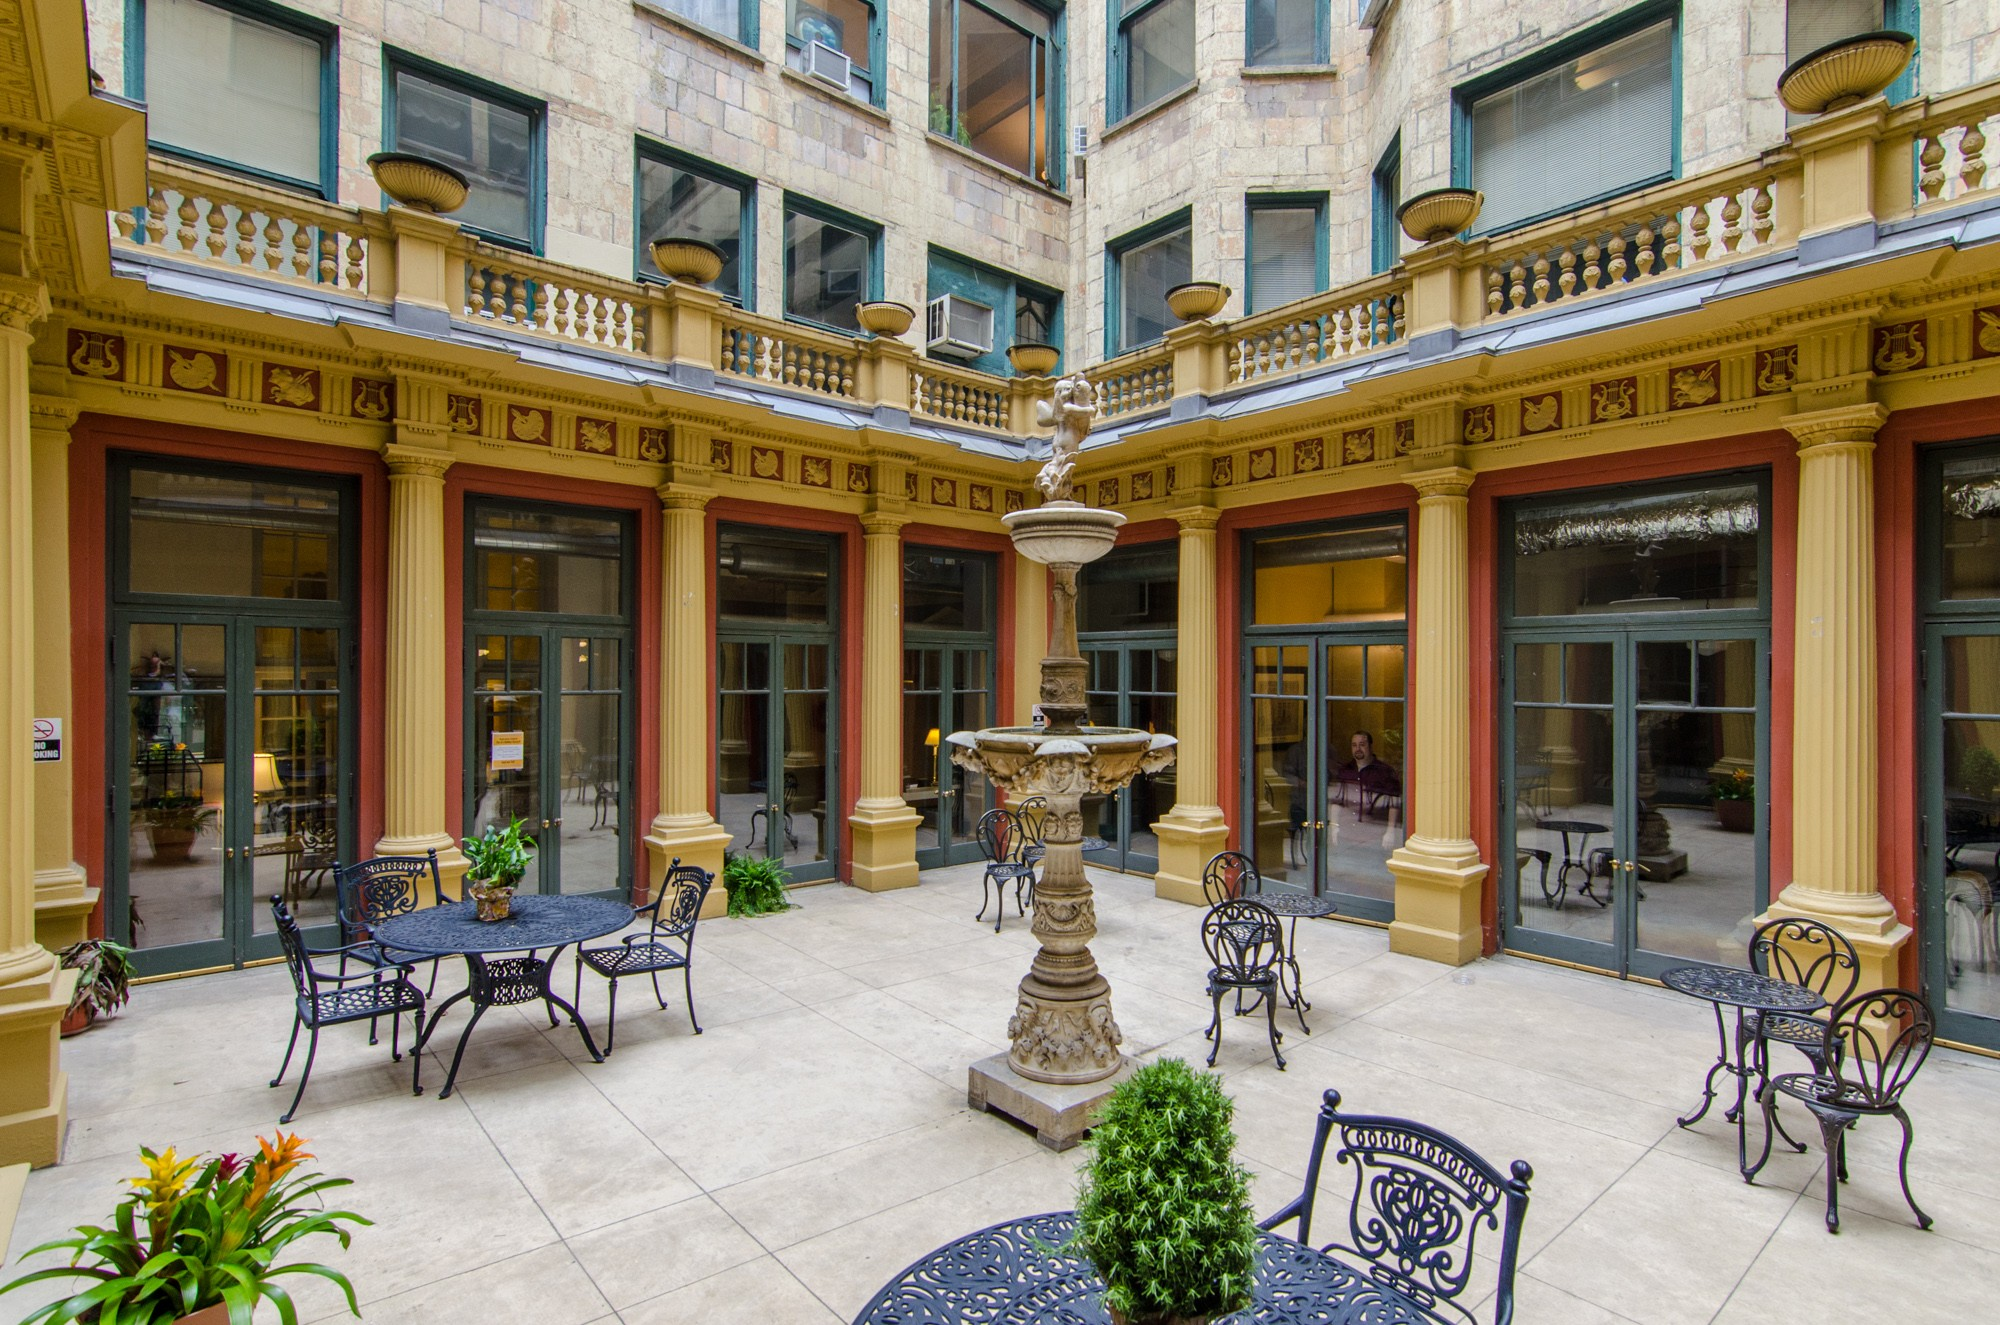 View of interior courtyard, Fine Arts Building (image courtesy of Open House Chicago).